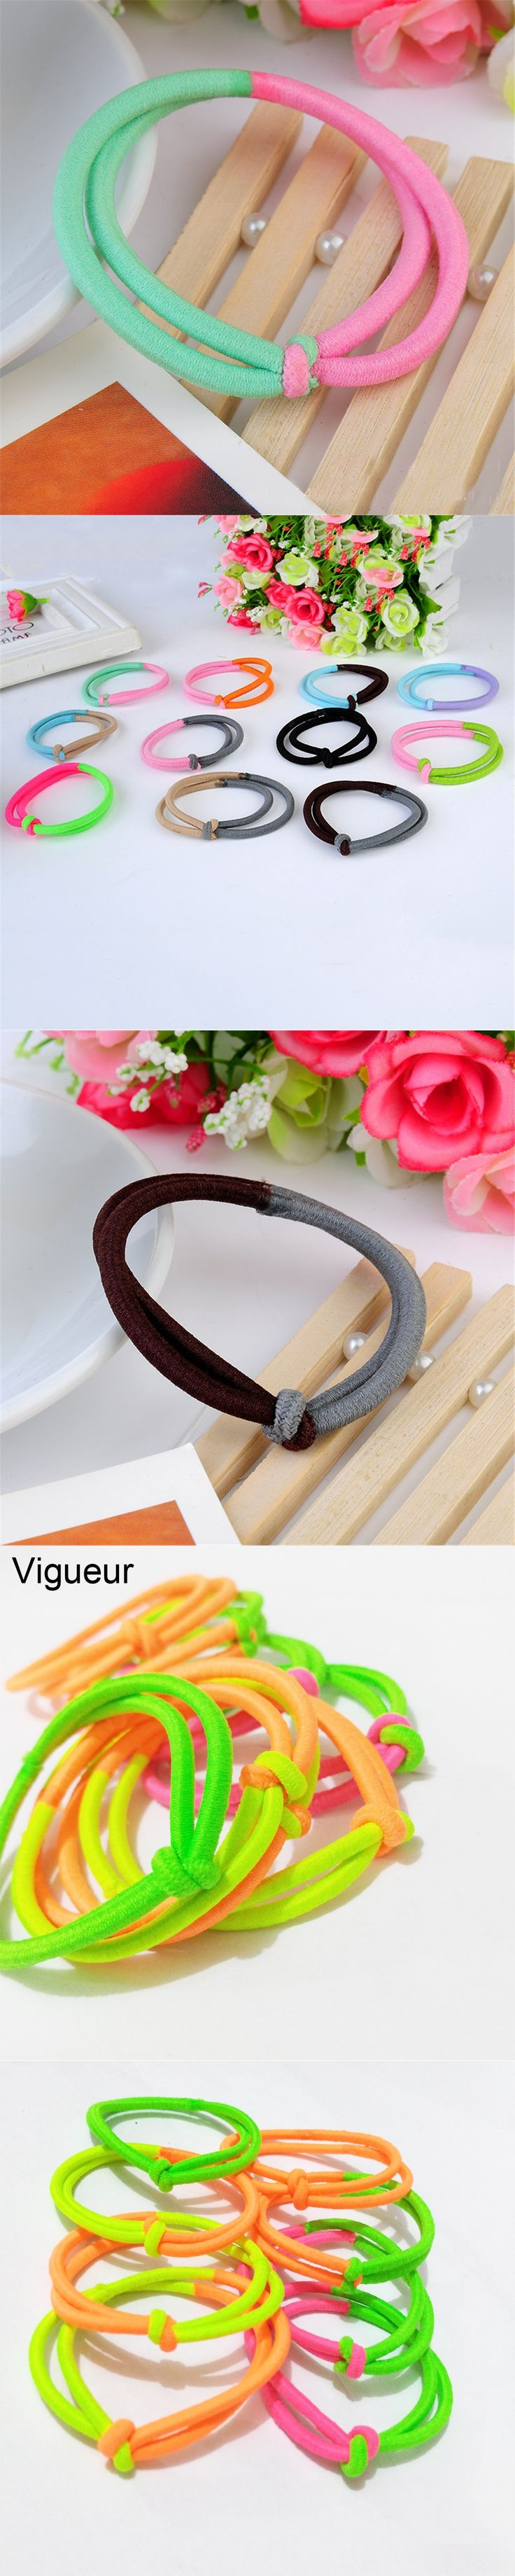 Vigueur 10pcs Hair Accessories Women Elastic Rubber Bands Holders Solid Color Rope Tie Gum for Hair Girls